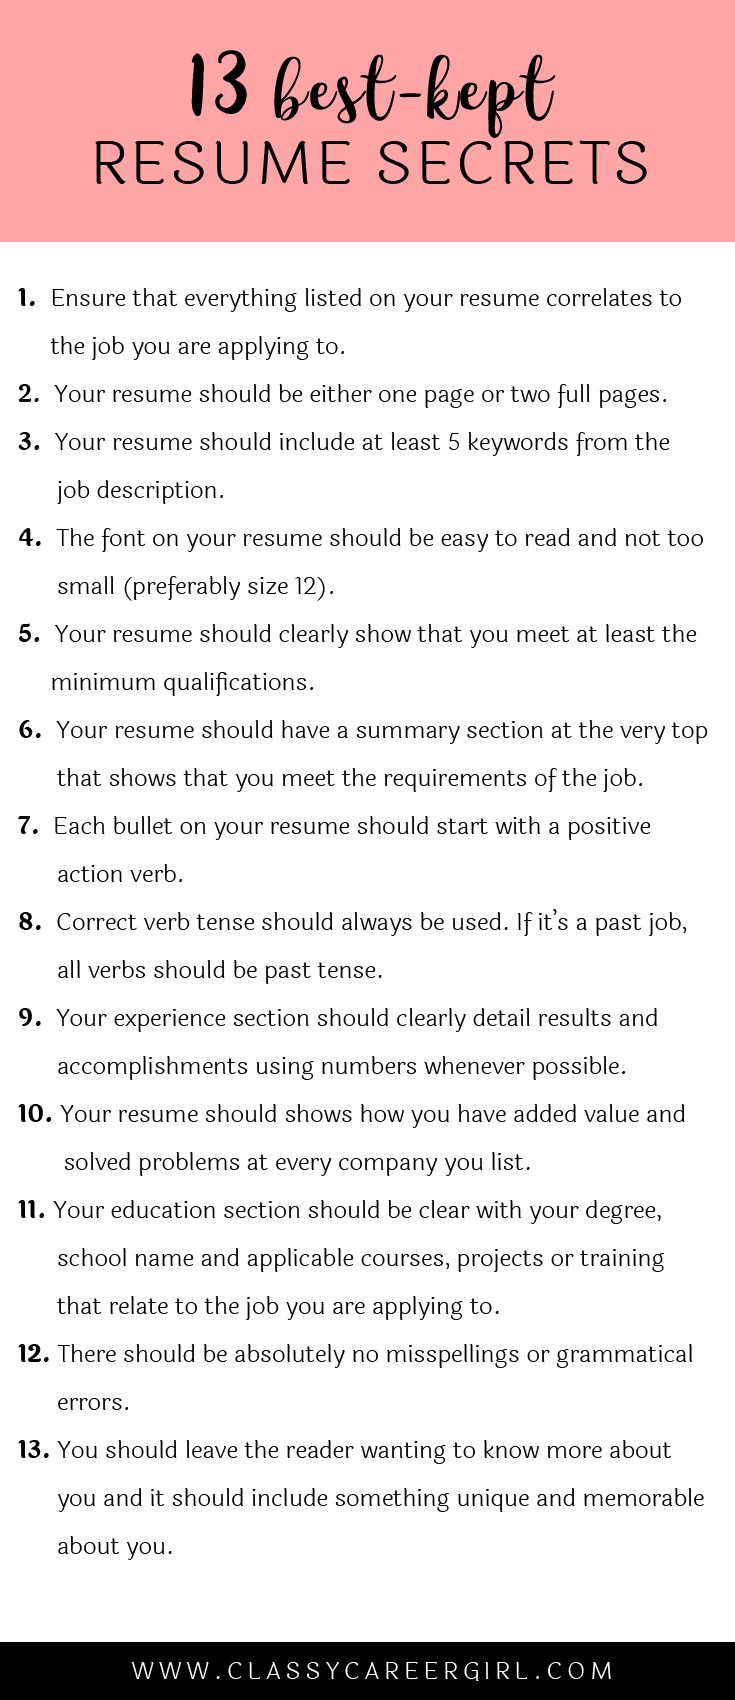 Opposenewapstandardsus  Fascinating  Ideas About Resume On Pinterest  Cv Format Resume Cv And  With Marvelous Some Hiring Managers Will Toss Your Resume Out If You Dont Know These  With Captivating Career Builder Resume Also Chef Resume In Addition Teacher Resume Examples And Should A Resume Be One Page As Well As Assistant Manager Resume Additionally What To Put In A Resume From Pinterestcom With Opposenewapstandardsus  Marvelous  Ideas About Resume On Pinterest  Cv Format Resume Cv And  With Captivating Some Hiring Managers Will Toss Your Resume Out If You Dont Know These  And Fascinating Career Builder Resume Also Chef Resume In Addition Teacher Resume Examples From Pinterestcom